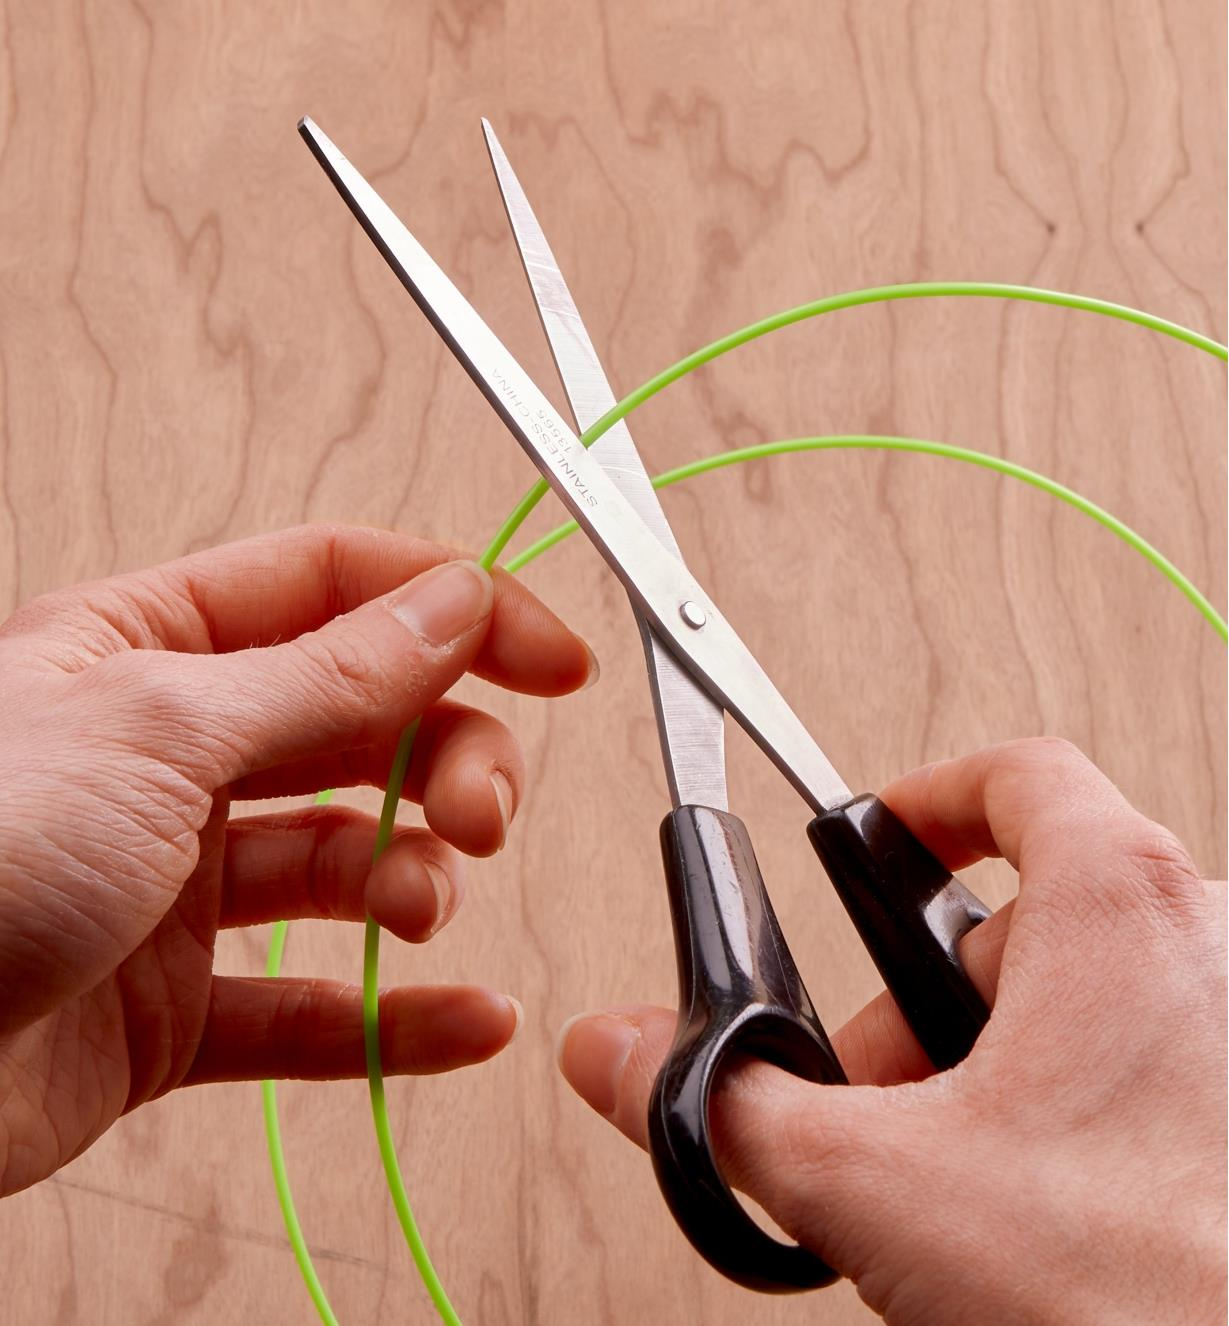 Cutting the FlexStraw with a pair of scissors